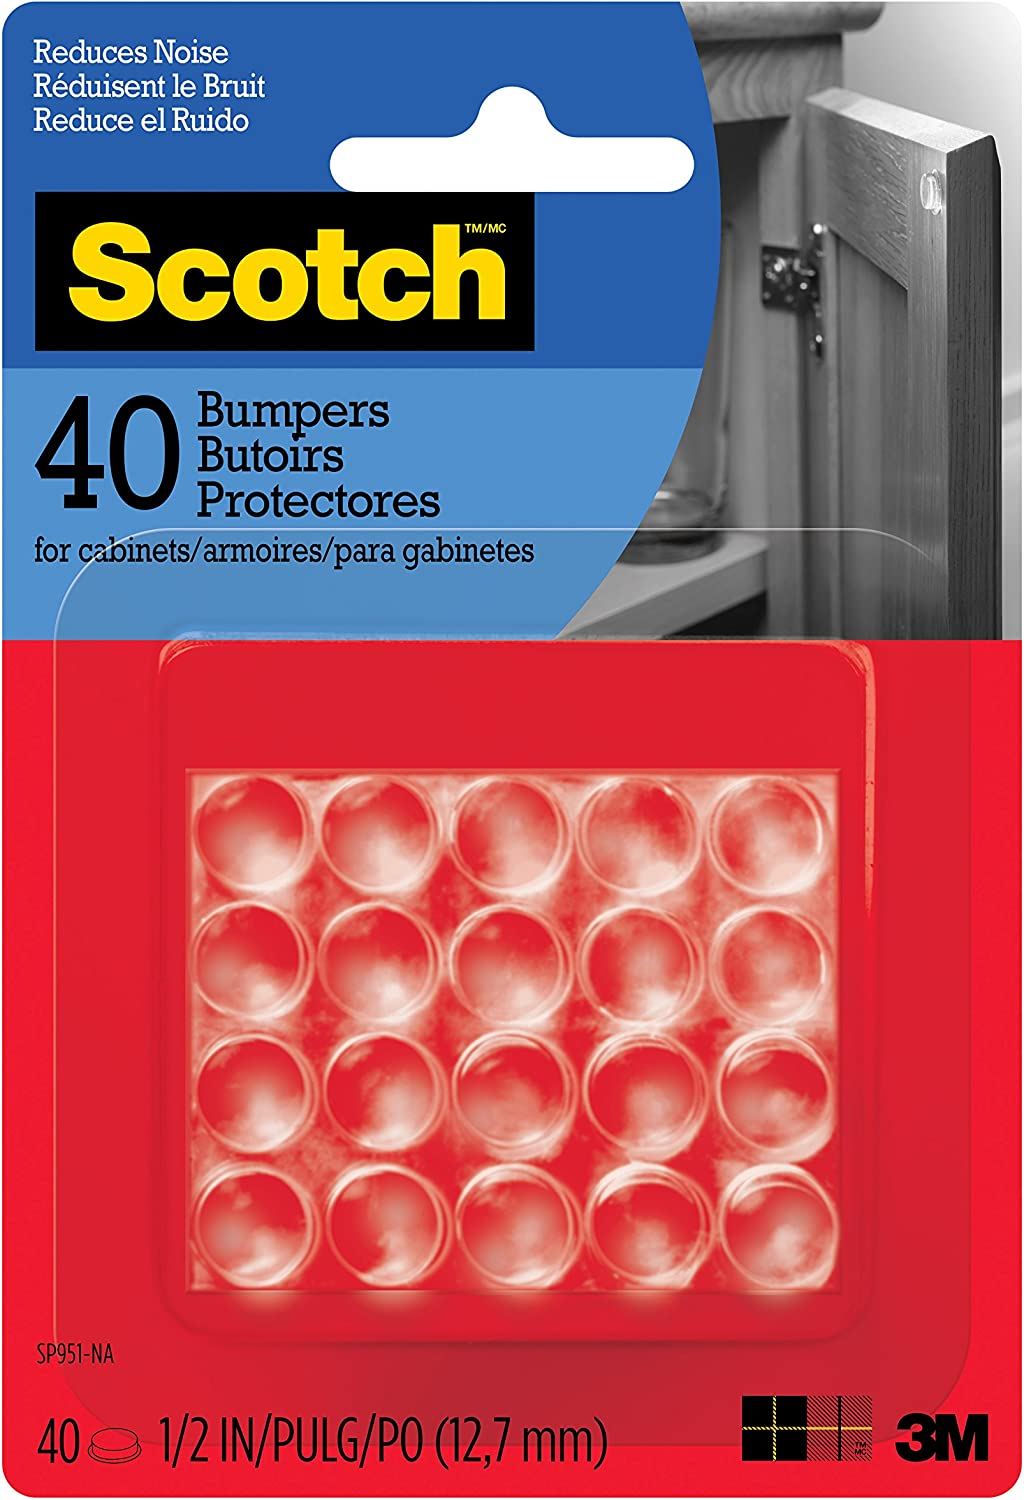 "Scotch Bumpers, 40 Bumpers/Pack, Clear, 1/2"", (SP951-NA)"